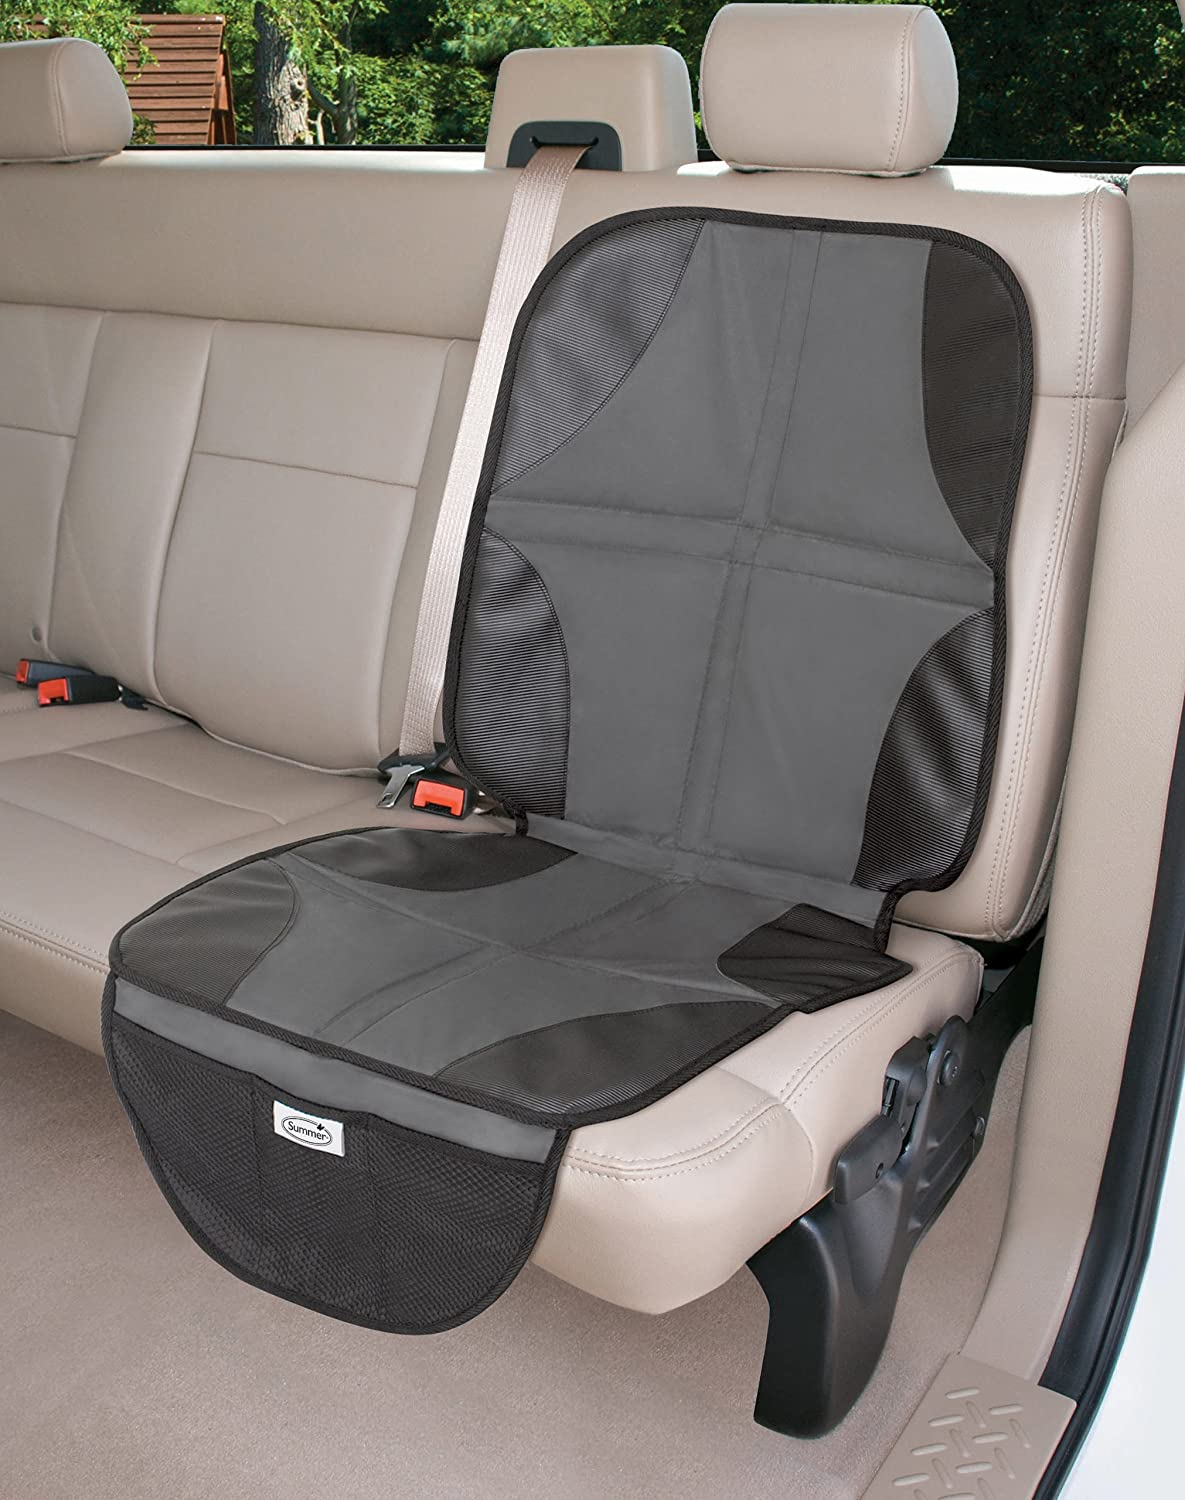 Summer Infant DuoMat Baby Child Car Seat Protector Mat with Storage 2 Pack